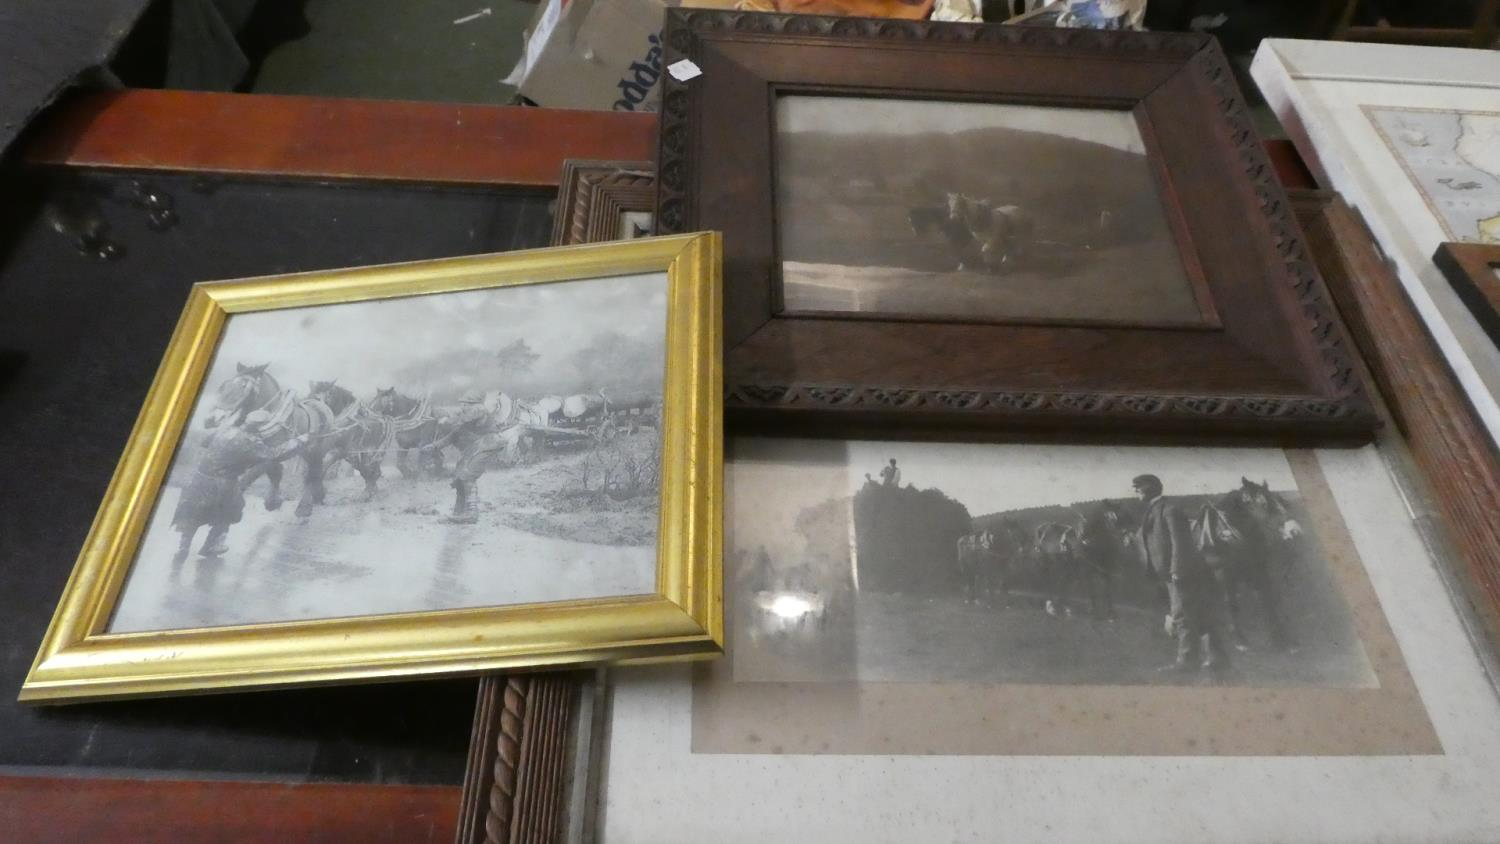 Lot 285 - A Set of Three Framed Photographs, Heavy Horses at Work